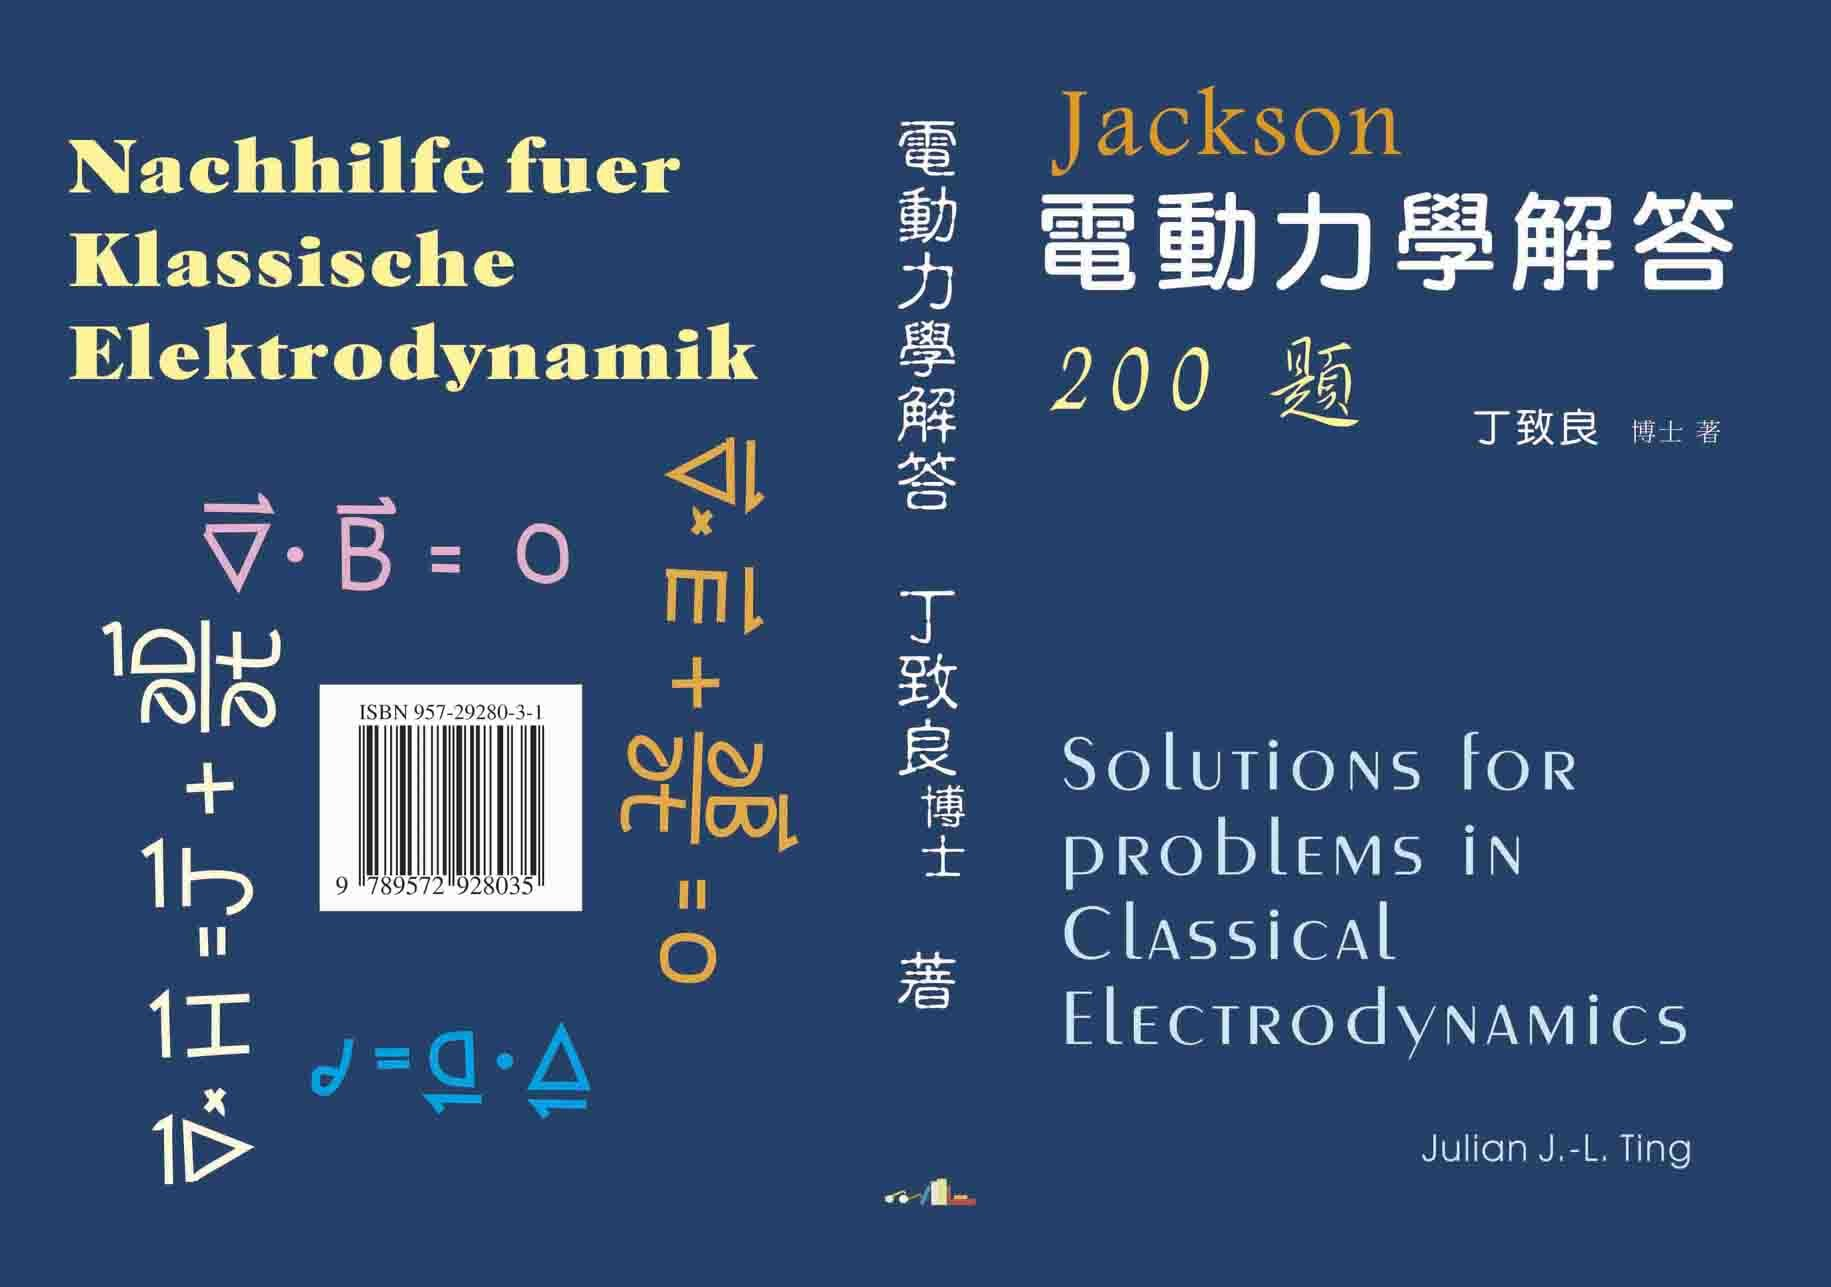 Solutions for problems in classical electrodynamics julian ting 71yrkgj7wwlg fandeluxe